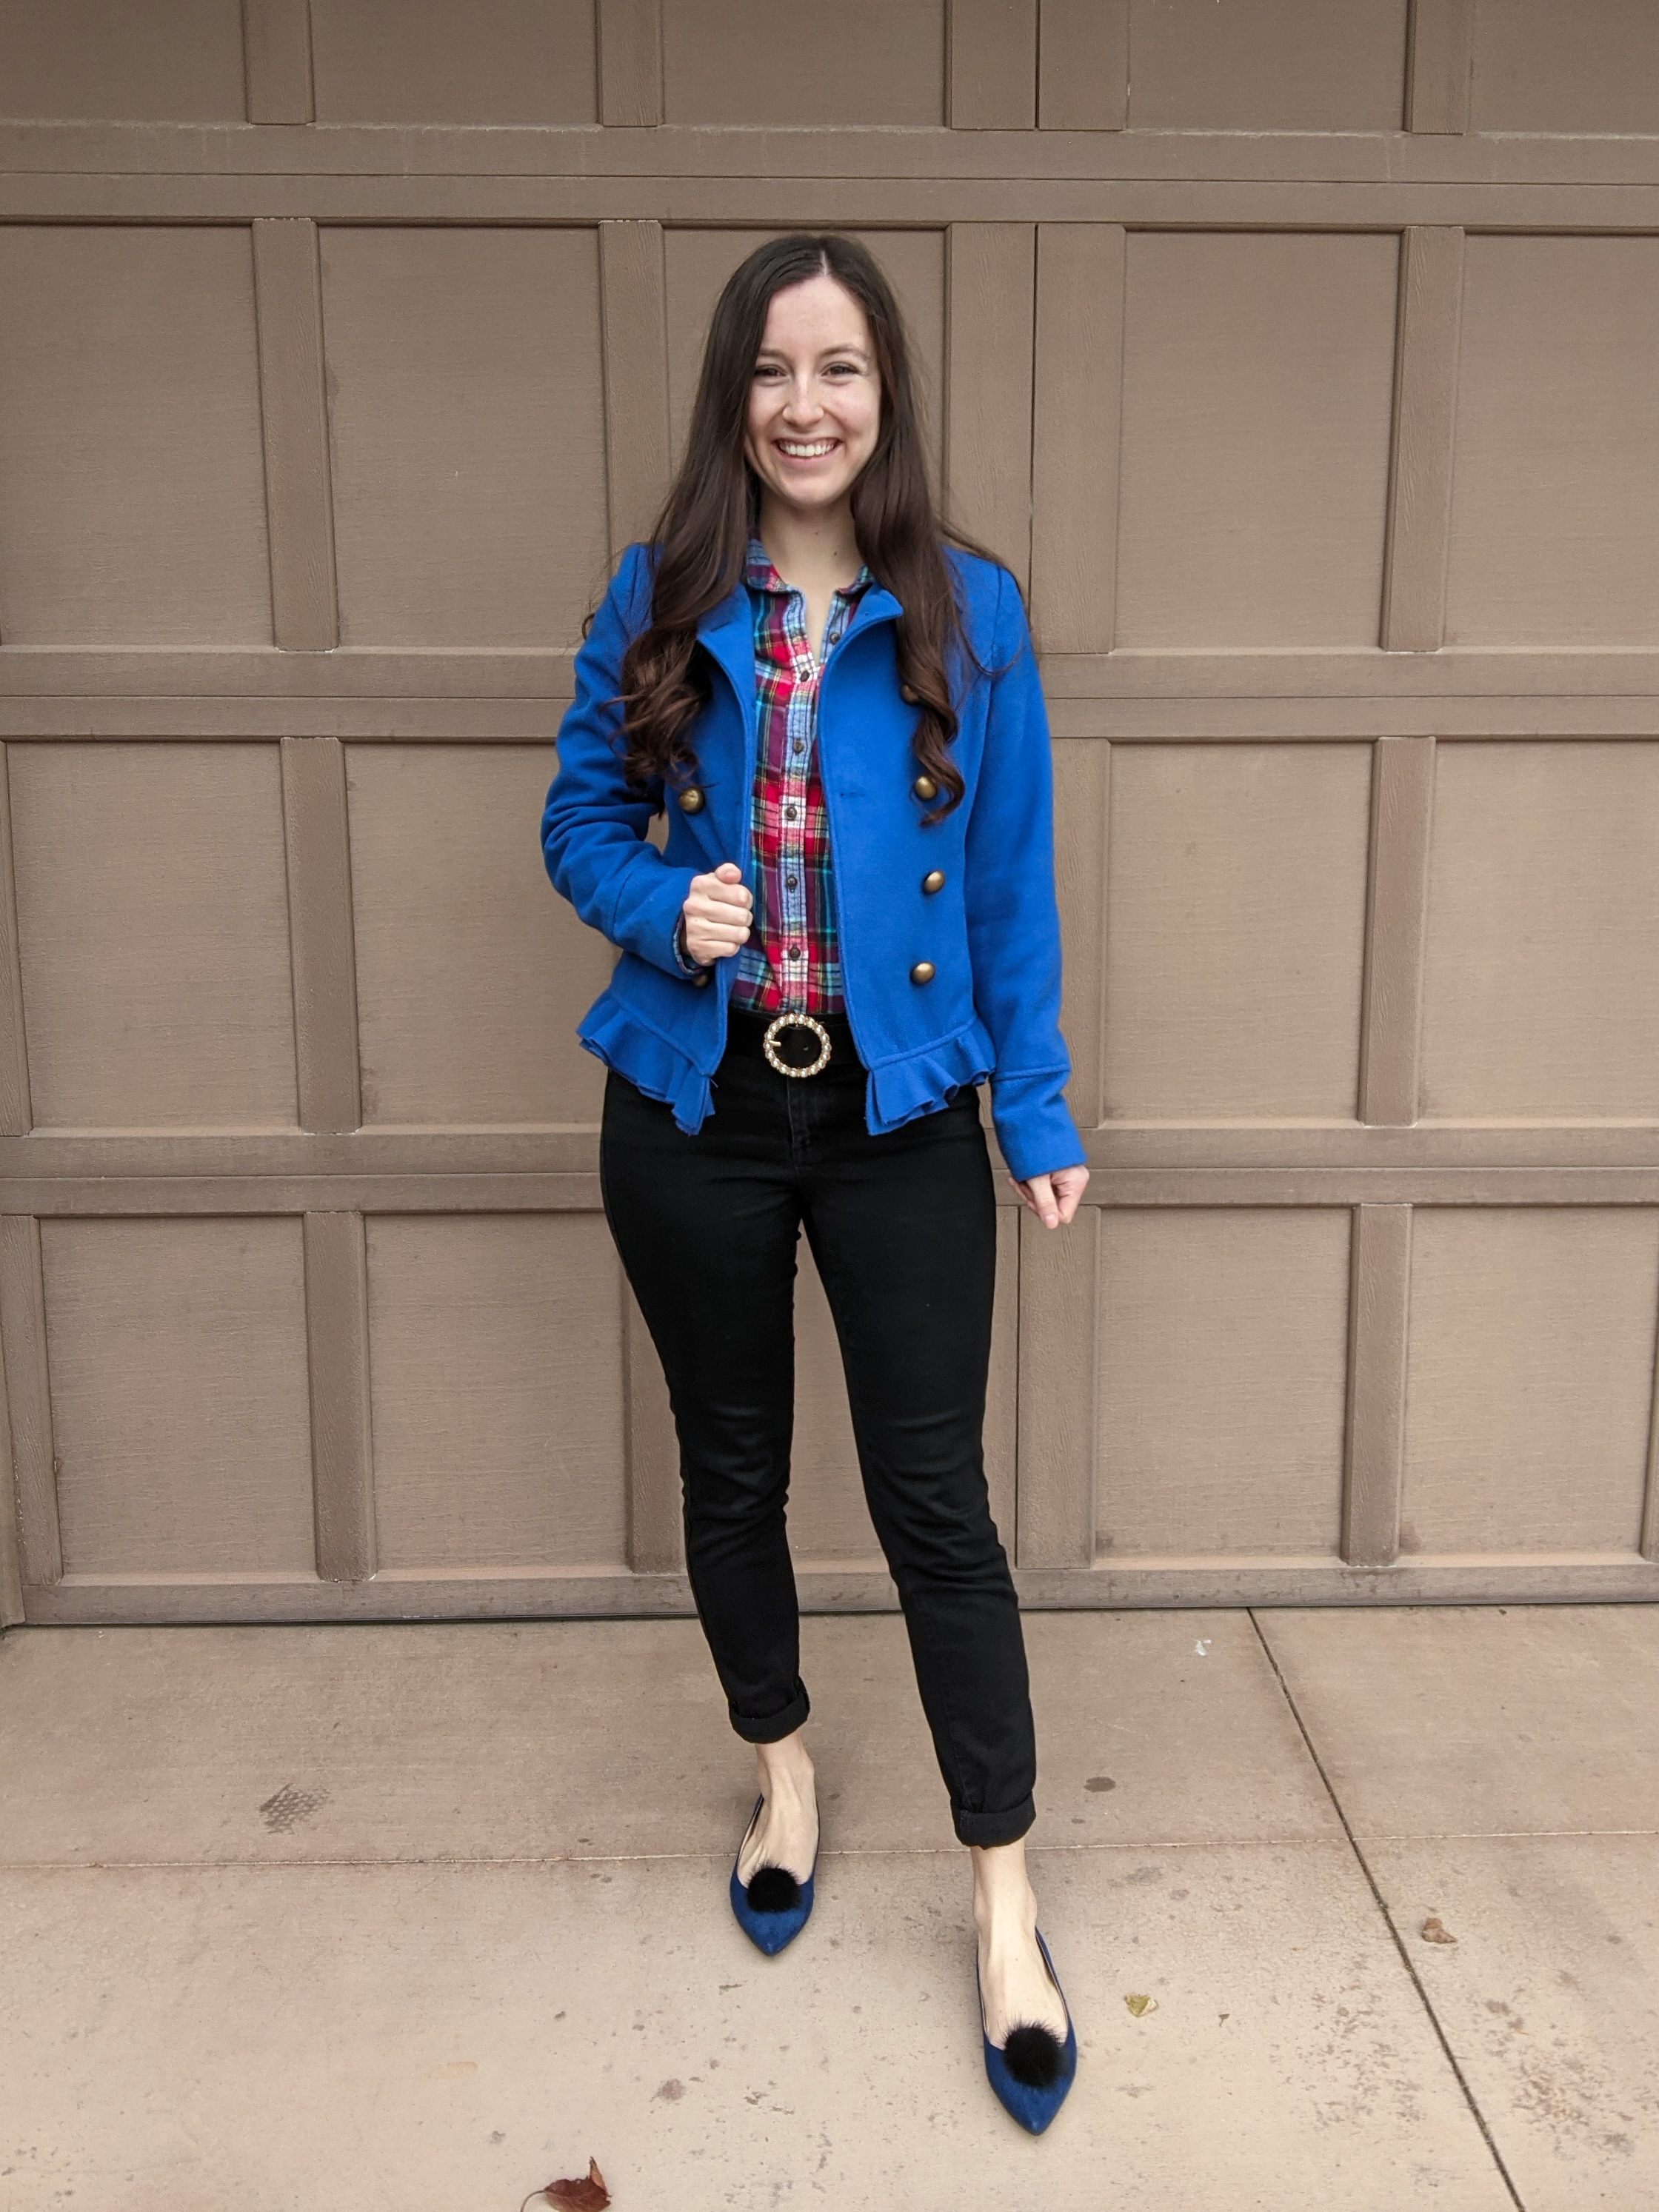 cobalt-blue-peacoat-plaid-flannel-pom-pom-shoes-pearl-belt